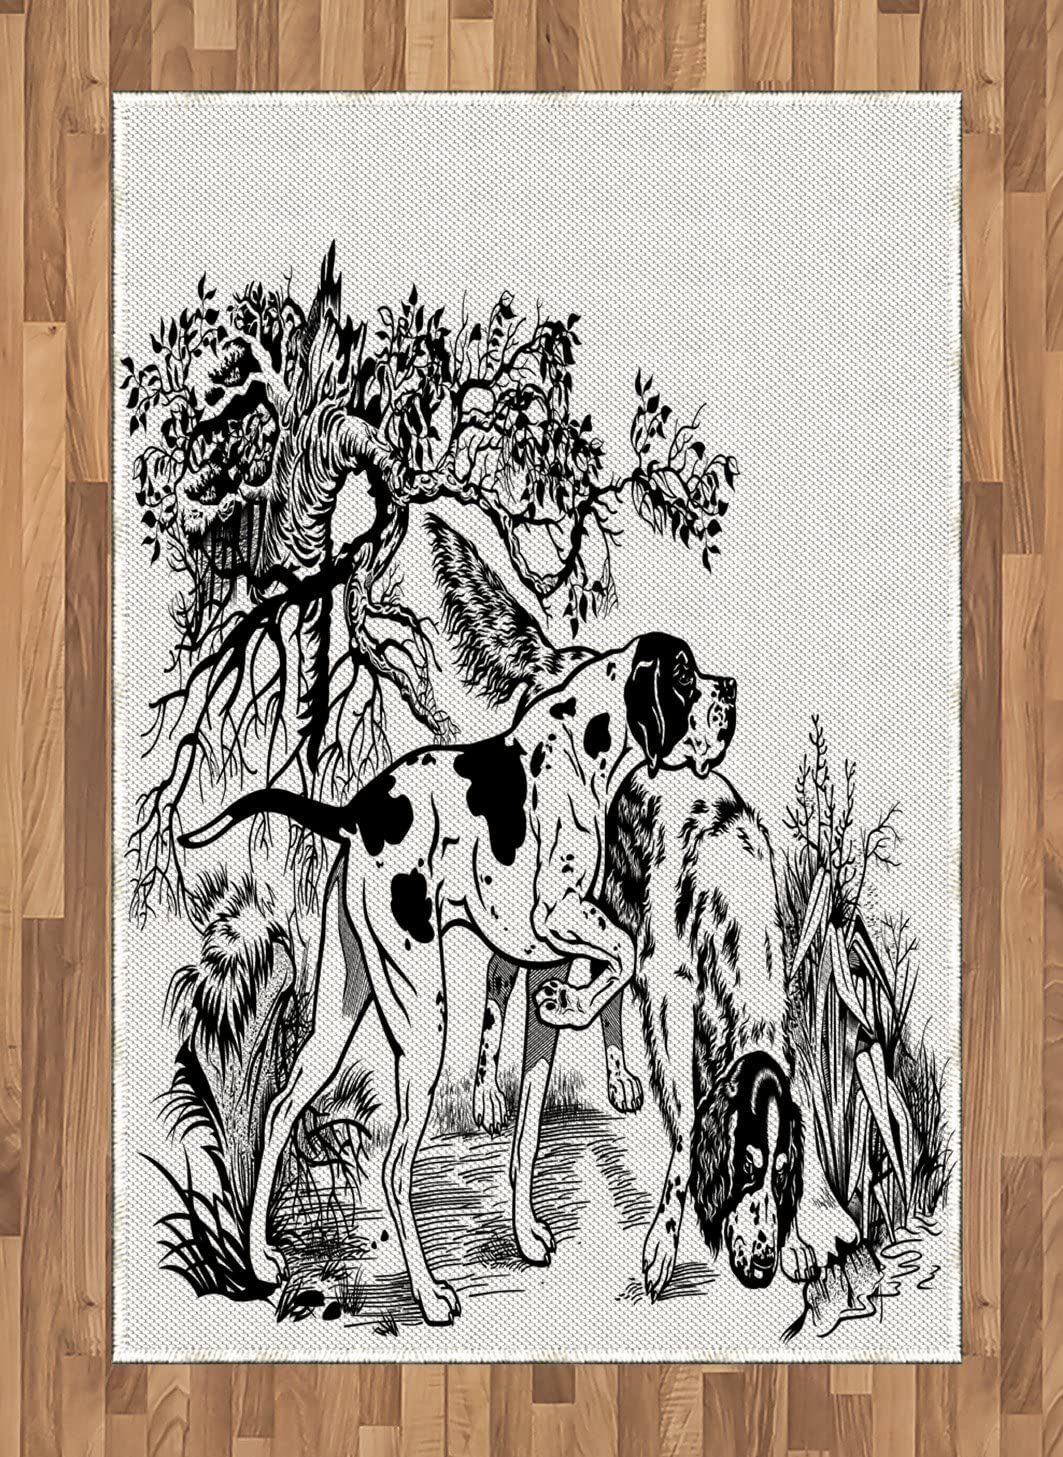 Ambesonne Hunting Area Rug, Hunting Dogs in The Forest Monochrome Drawing English Pointer and Setter Breeds, Flat Woven Accent Rug for Living Room Bedroom Dining Room, 4' X 5.7', Black White